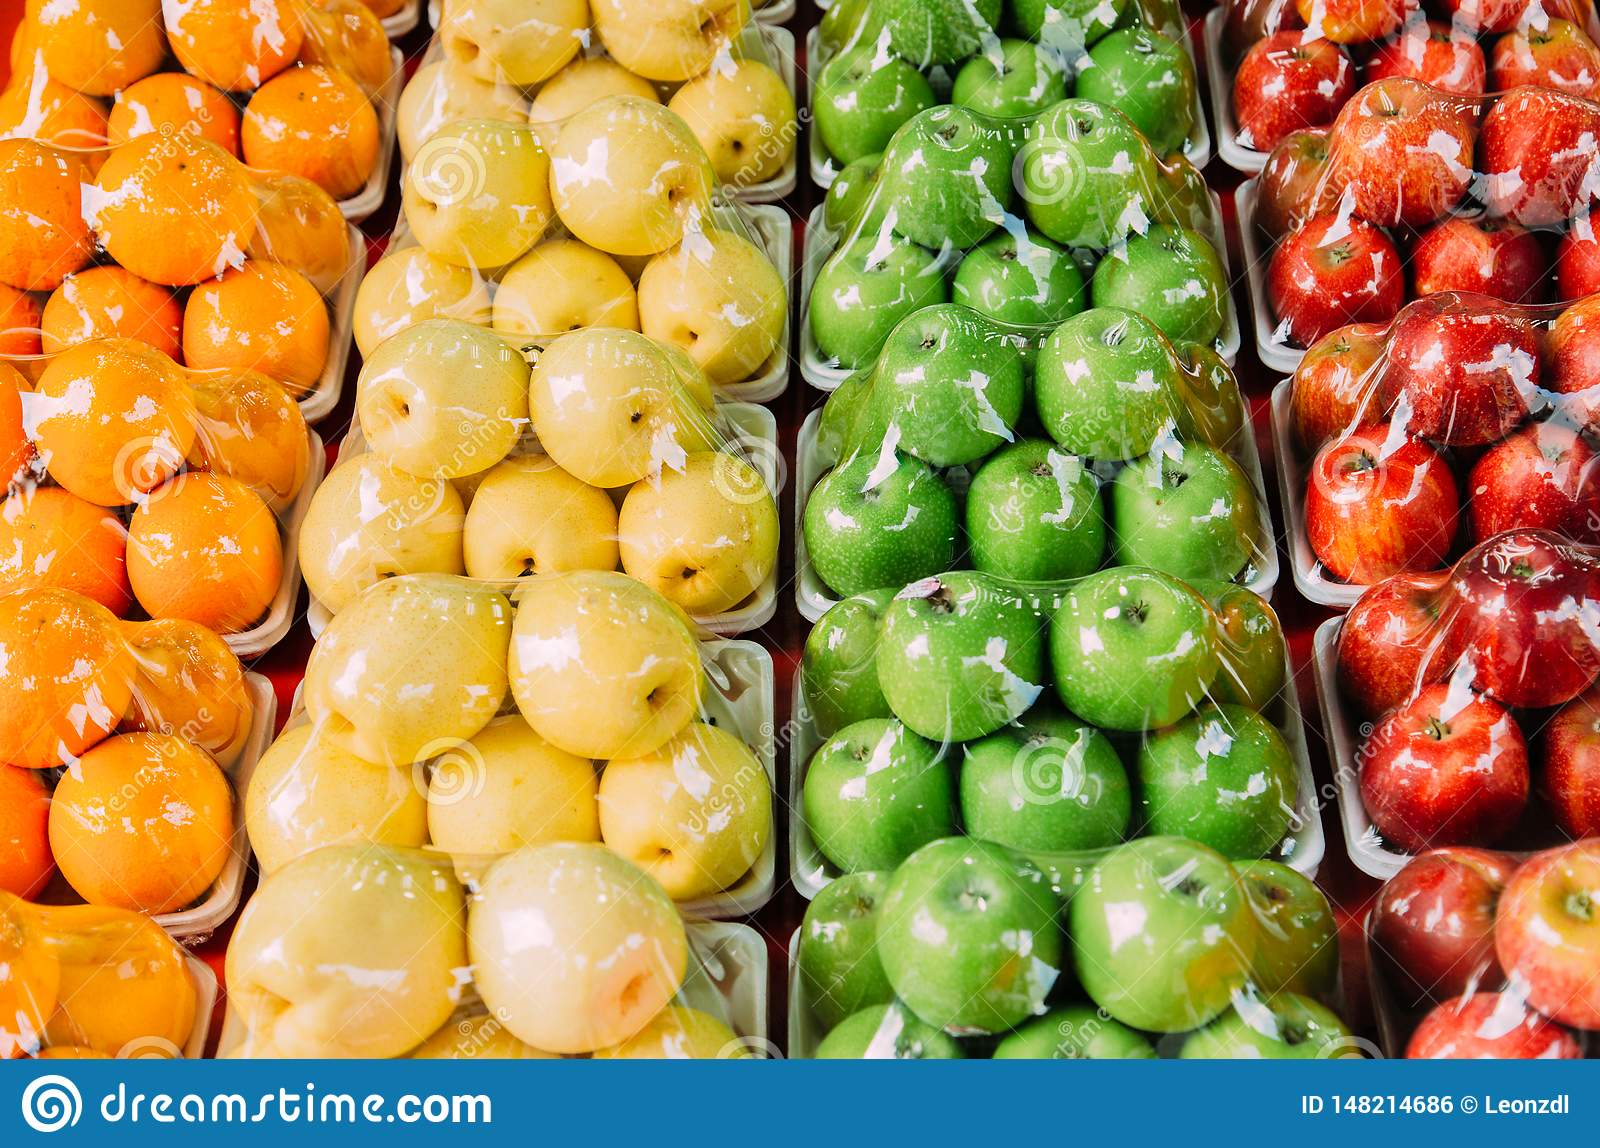 Colorful fruits display in supermarket